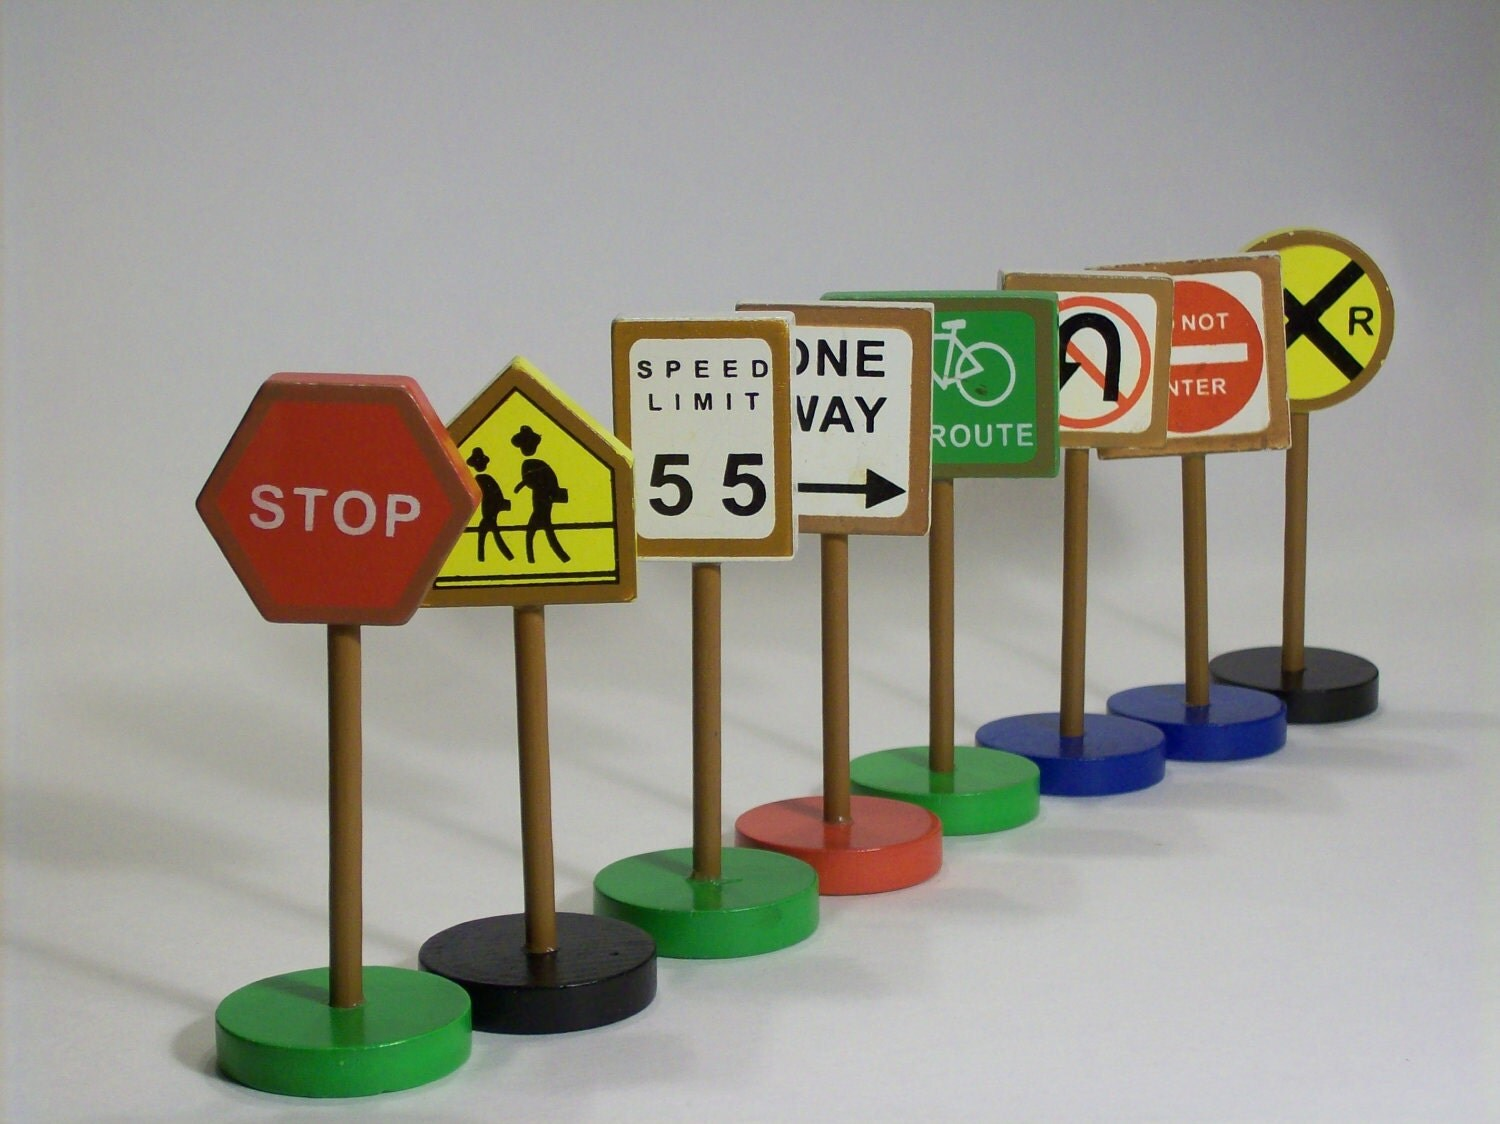 Vintage Toy Street Signs By Vintagearcheology On Etsy. Catcher Signs Of Stroke. Internal Carotid Artery Signs. Astrograph Signs Of Stroke. Launderette Signs. Alice And Wonderland Signs Of Stroke. 100 Pic Answer Signs Of Stroke. Sin Signs Of Stroke. Keyboard Character Signs Of Stroke